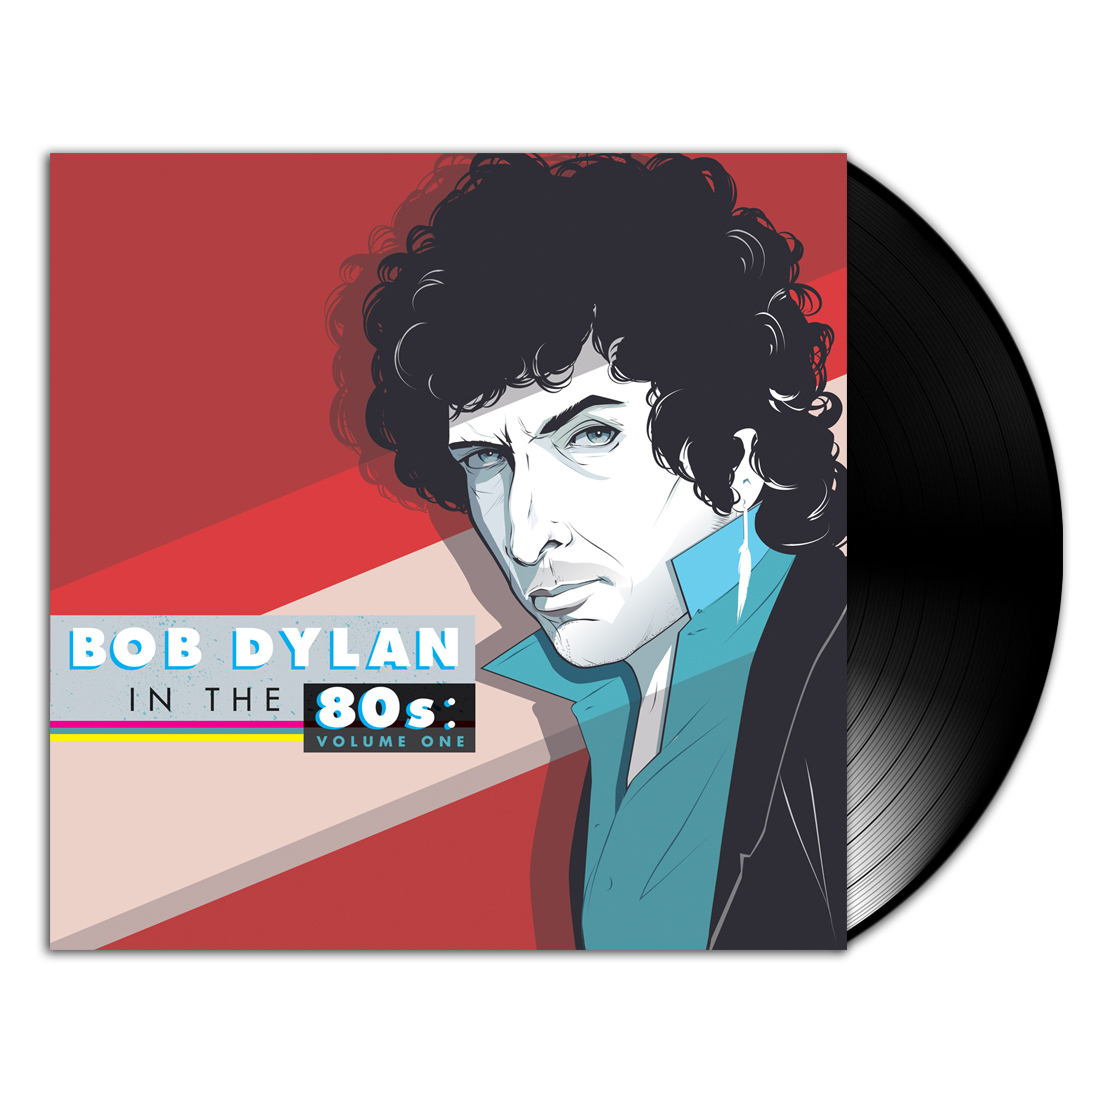 Bob Dylan in the 80s: Volume One LP